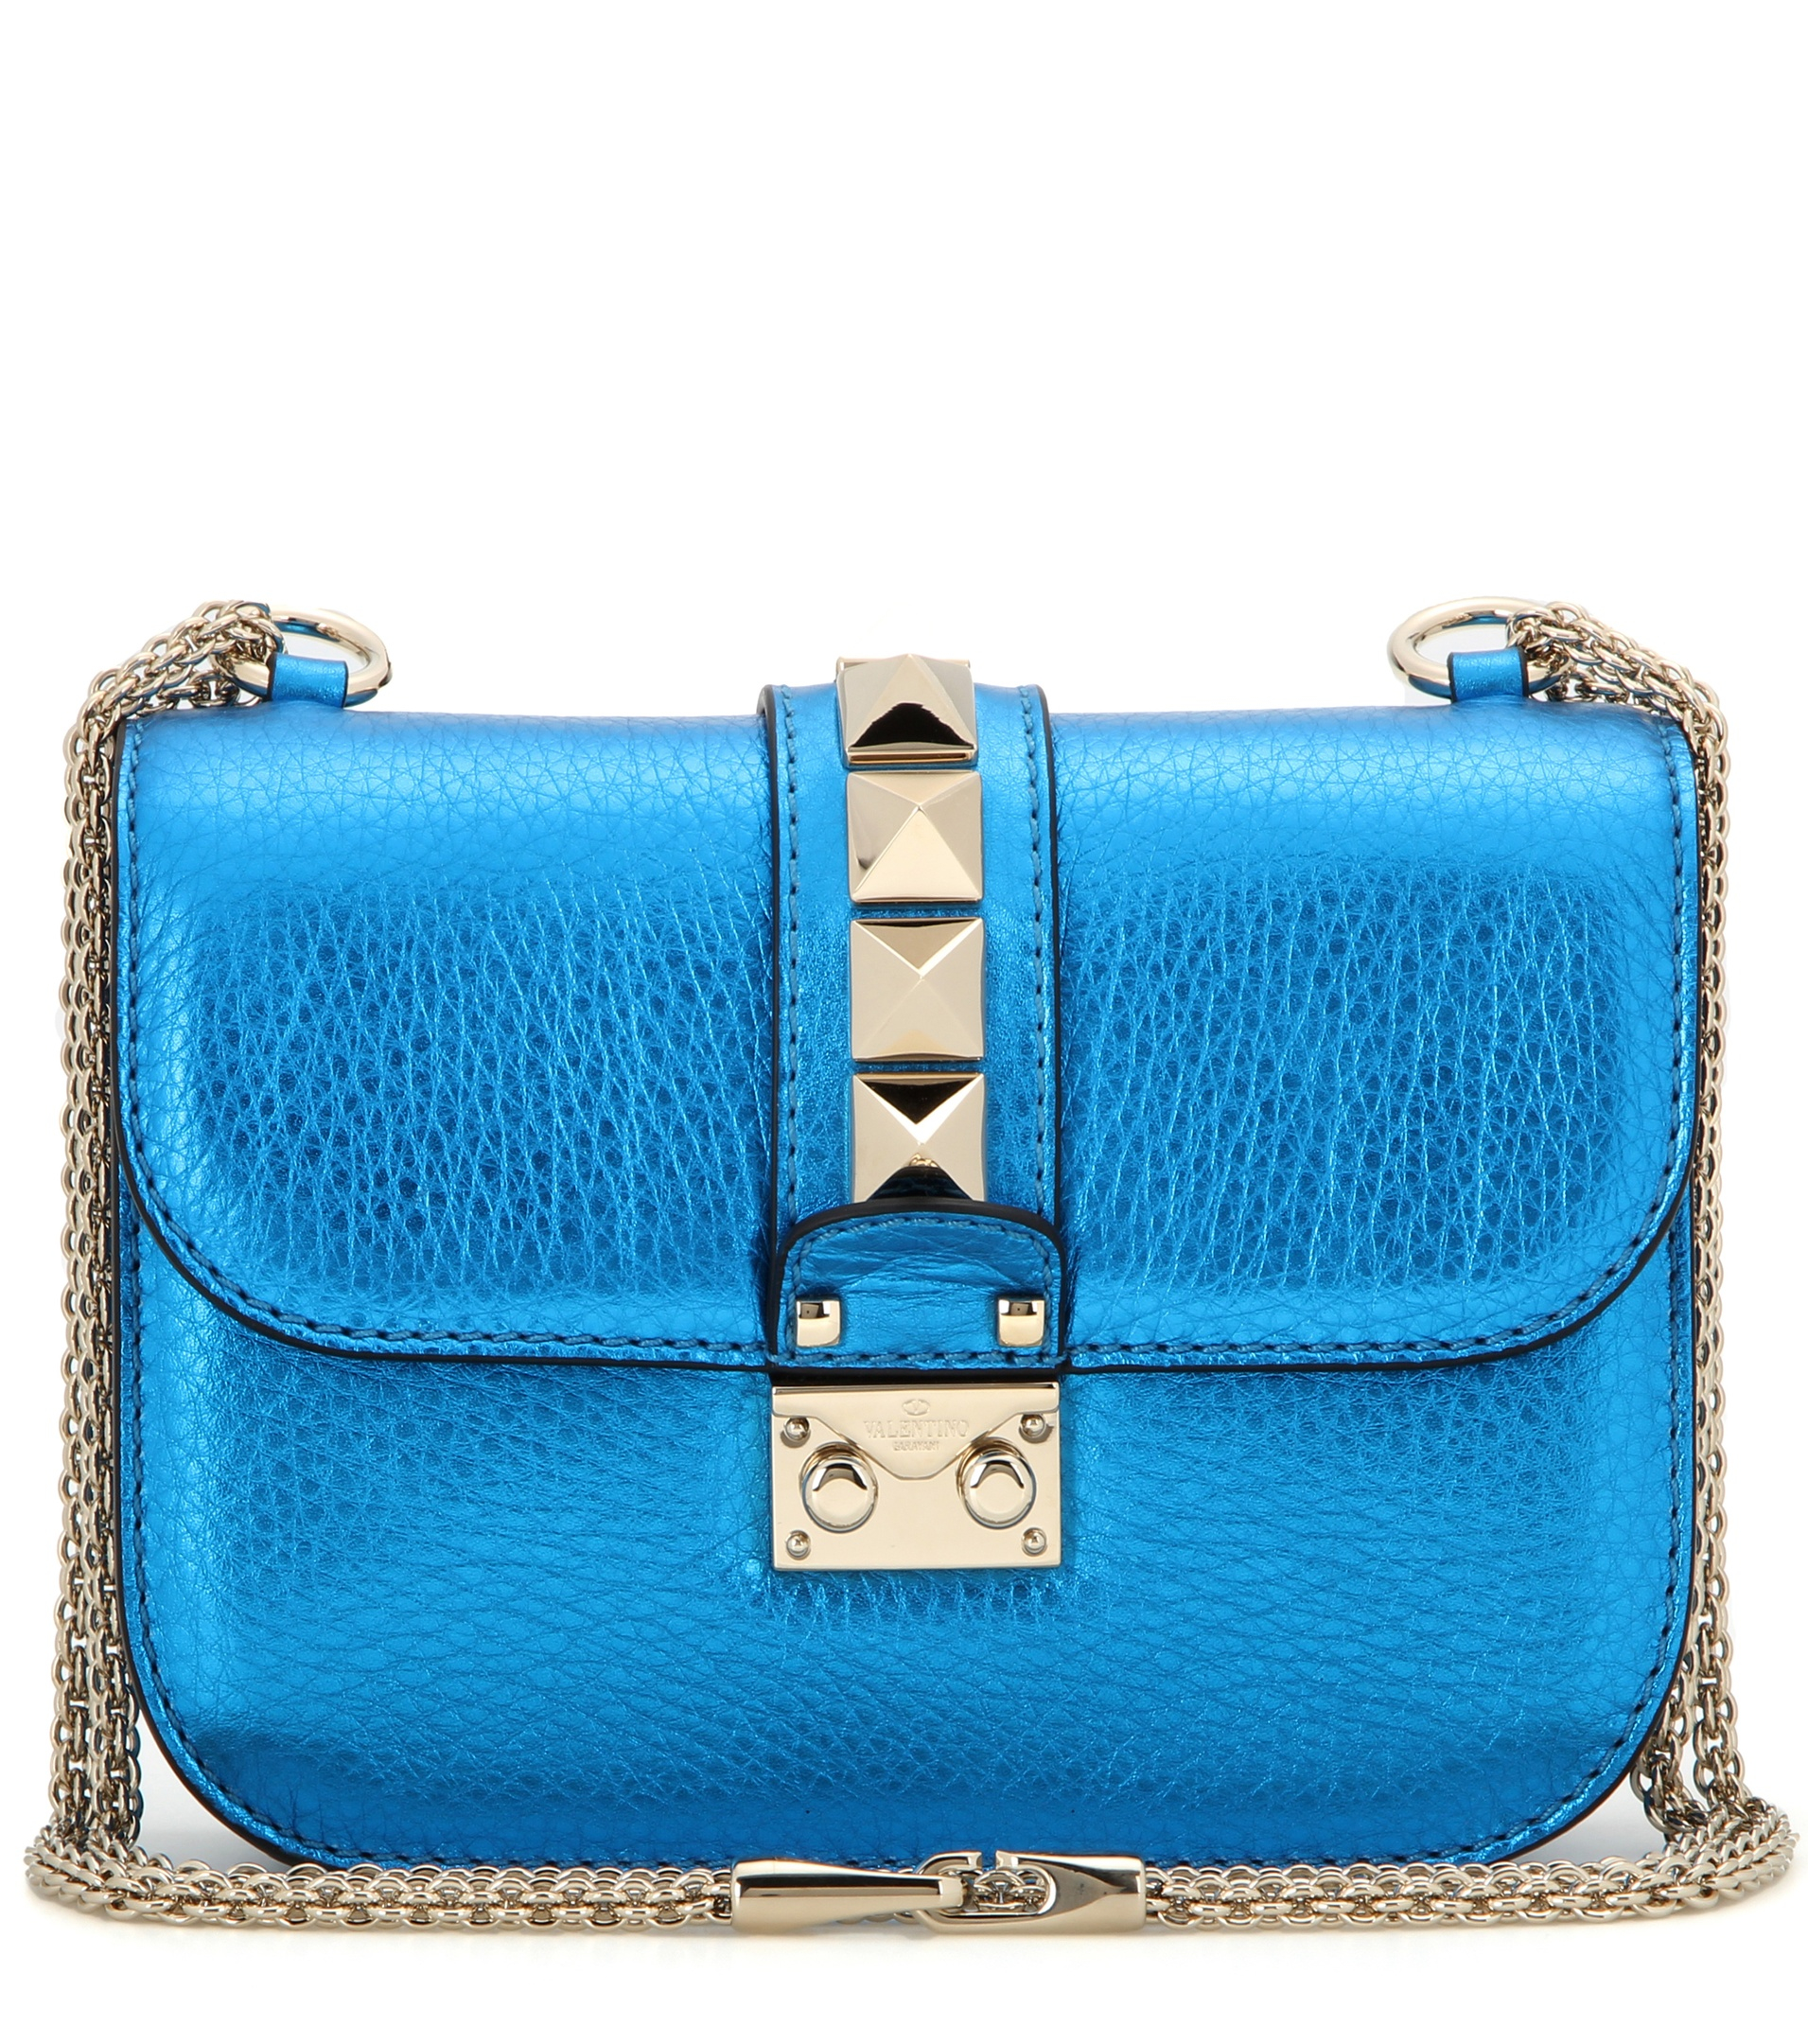 Valentino Lock Small Metallic Leather Shoulder Bag in Blue ...